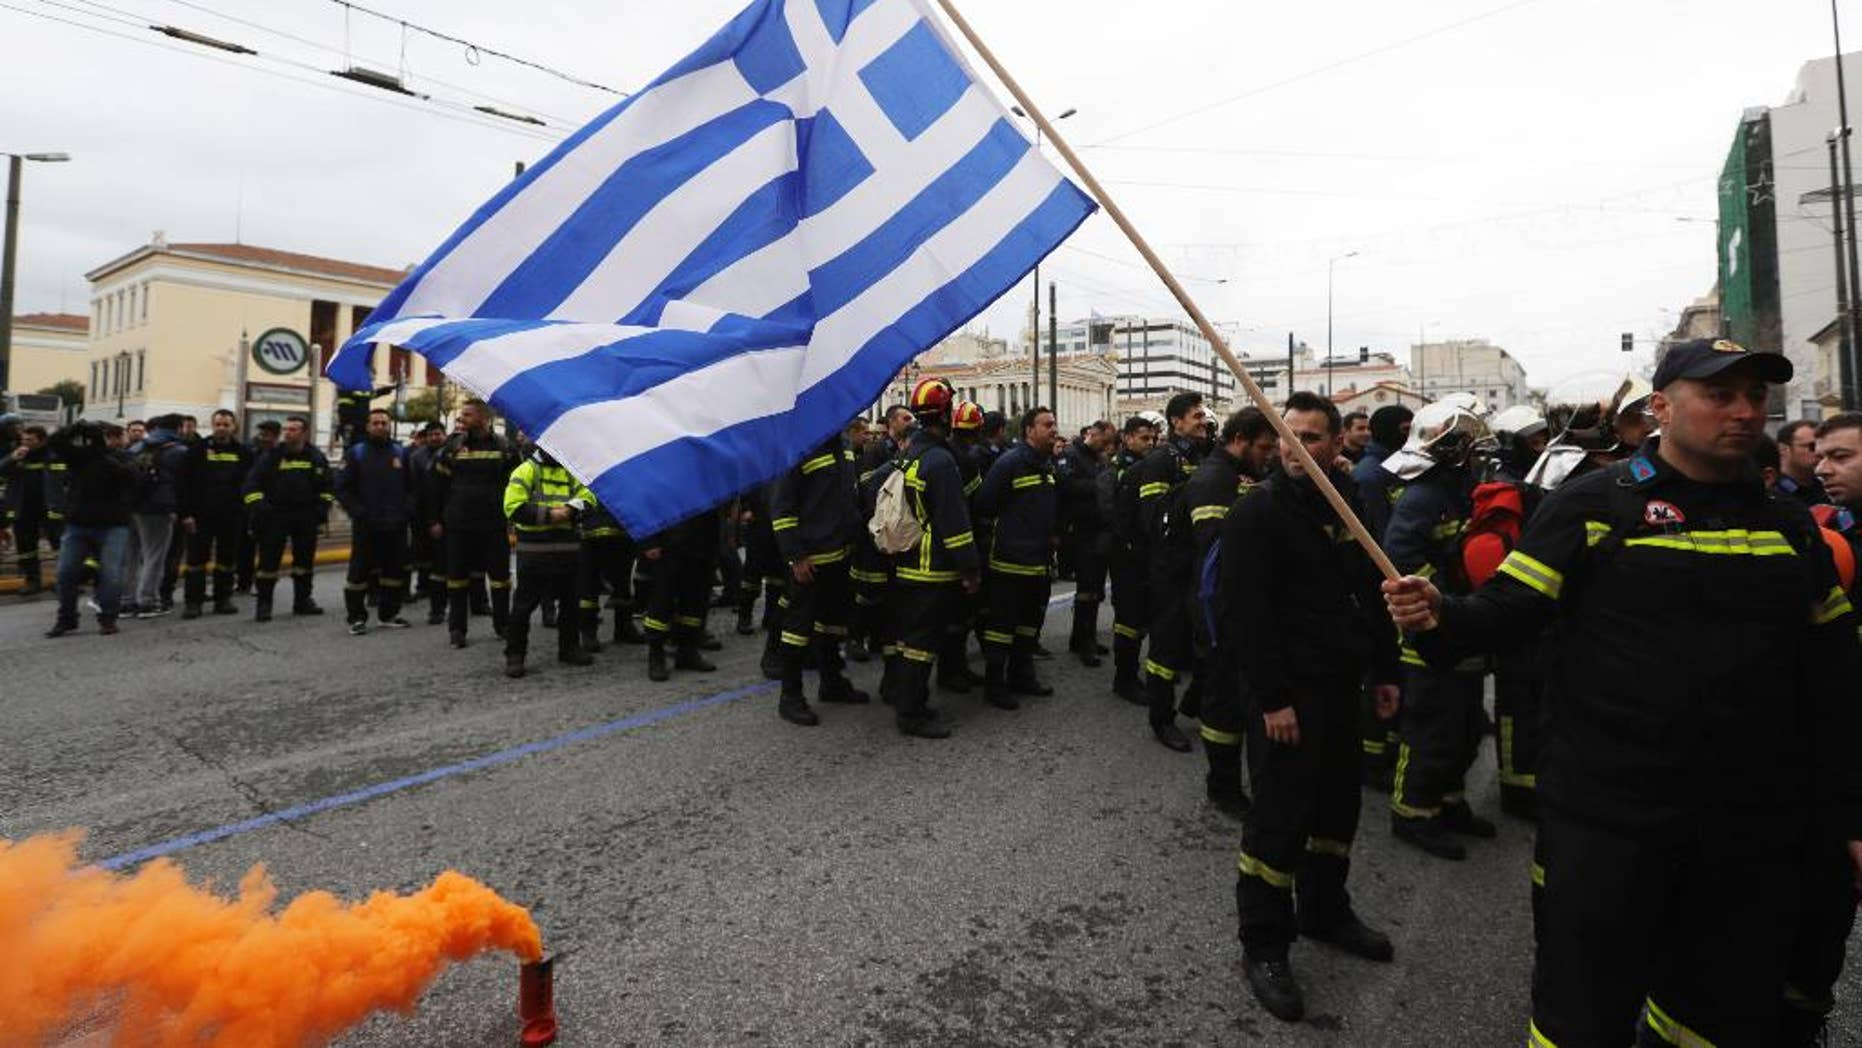 A firefighter holds a Greek flag during a protest in central Athens, on Wednesday, Feb. 8, 2017. Hundreds of firefighters in uniform have taken to the streets of the Greek capital to protest hiring conditions. (AP Photo/Thanassis Stavrakis)